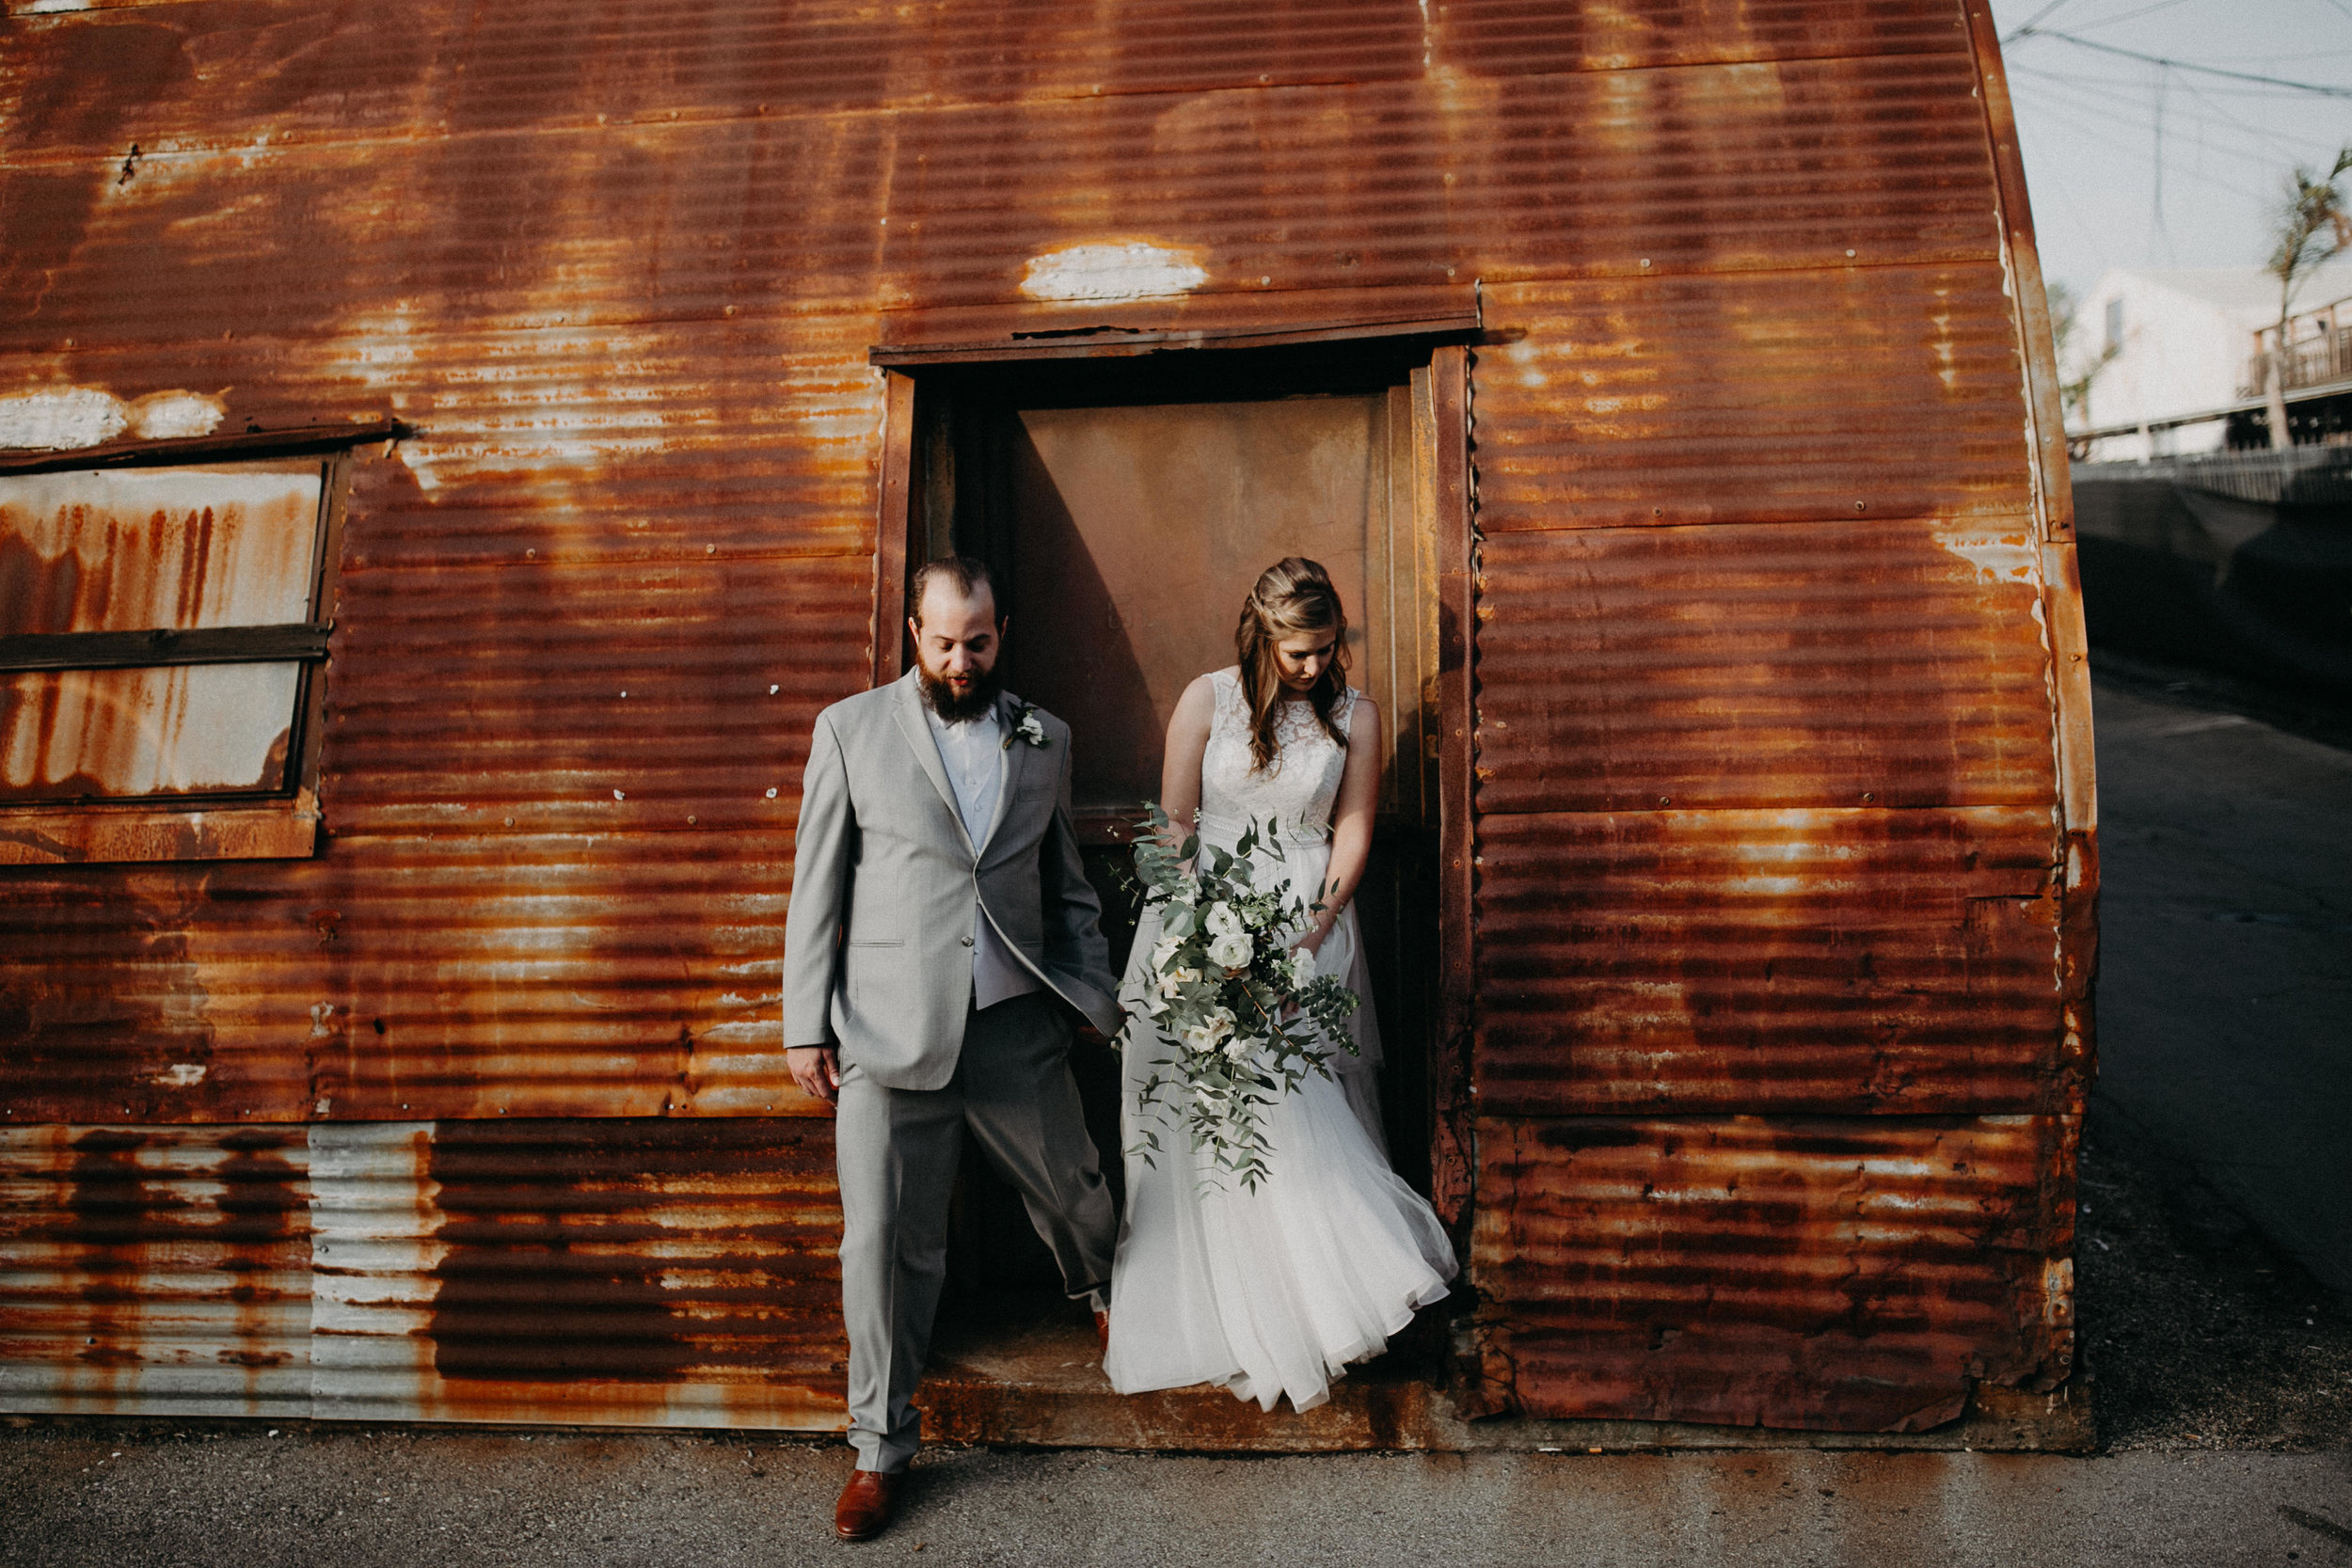 Smoky Hollow Studios Wedding Anne & Lewis Emily Magers Photography-450.jpg